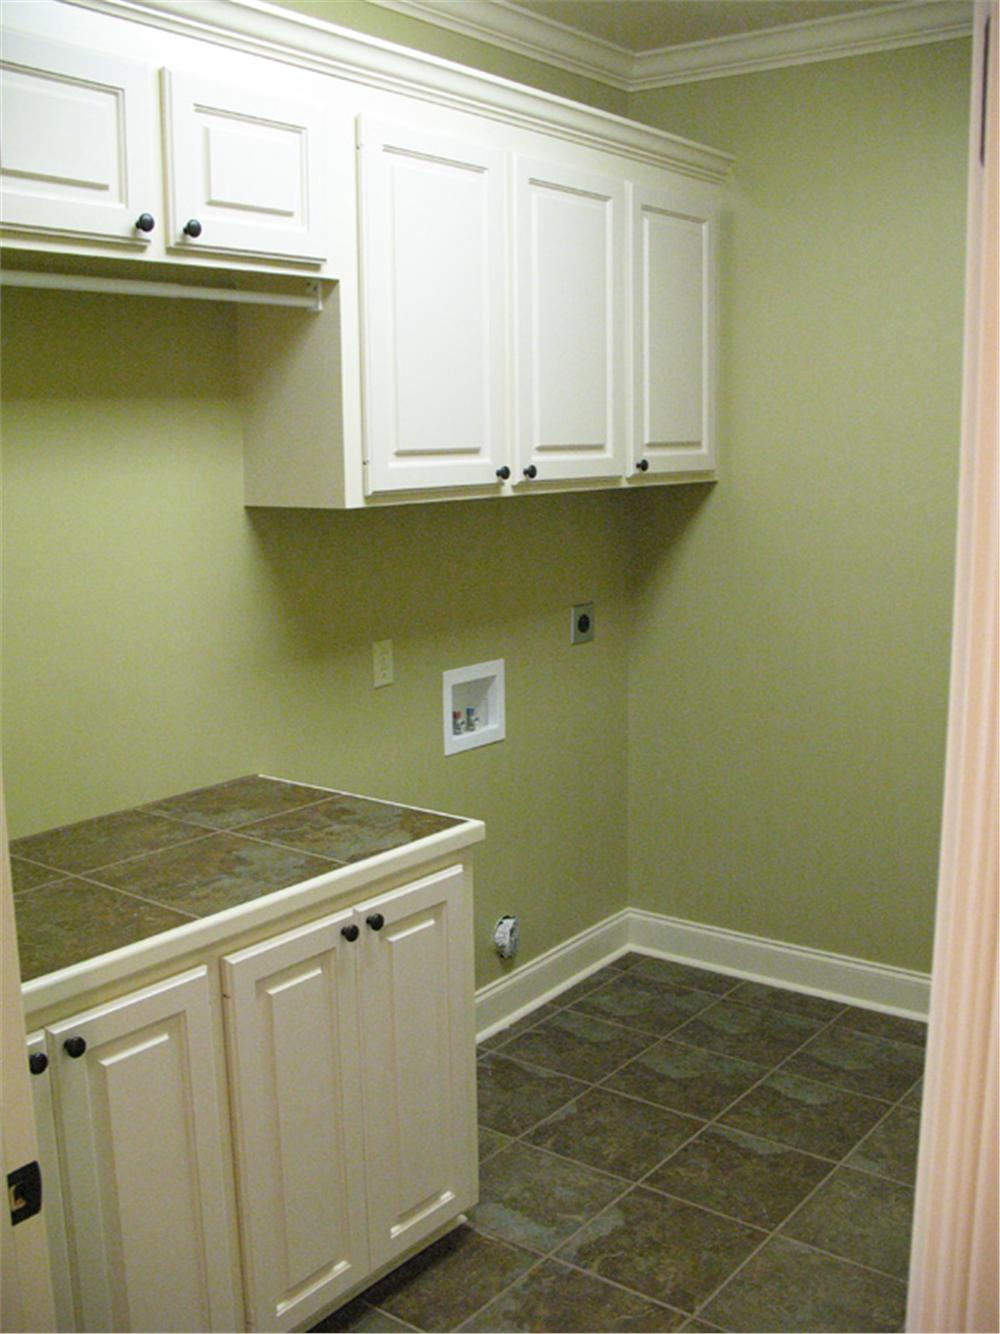 141-1007 house plan utility room